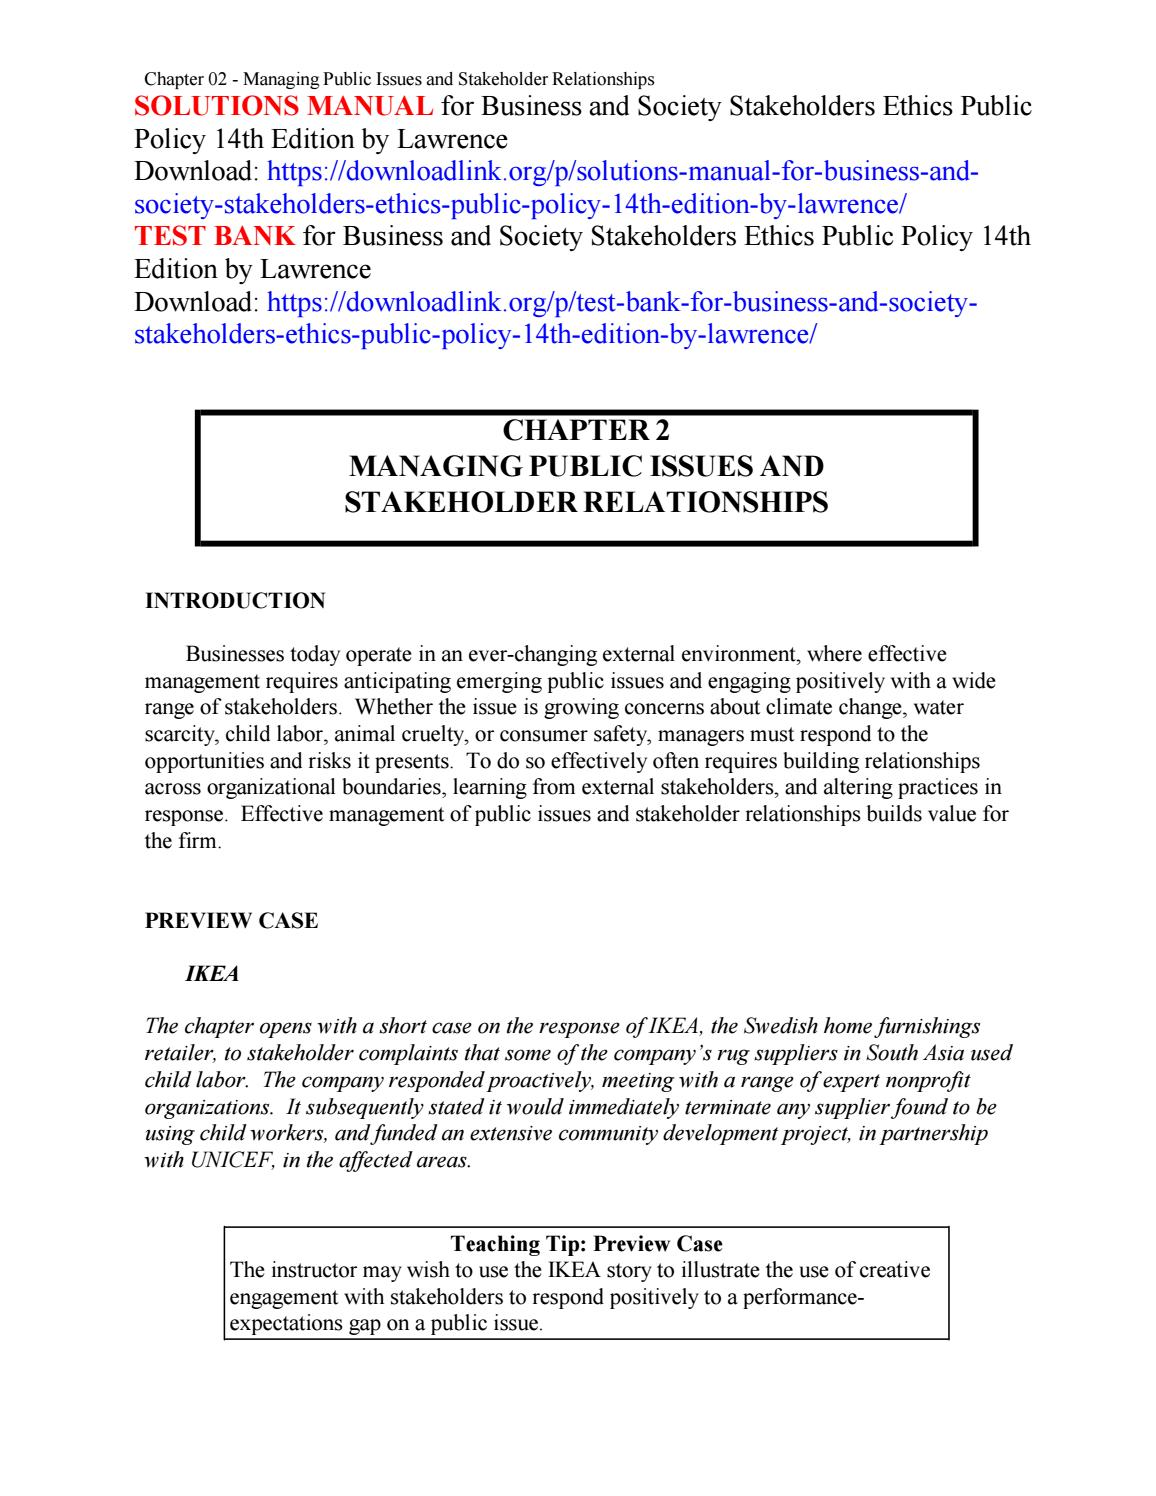 Solutions manual for business and society stakeholders ethics public policy  14th edition by lawrence by alaten - issuu